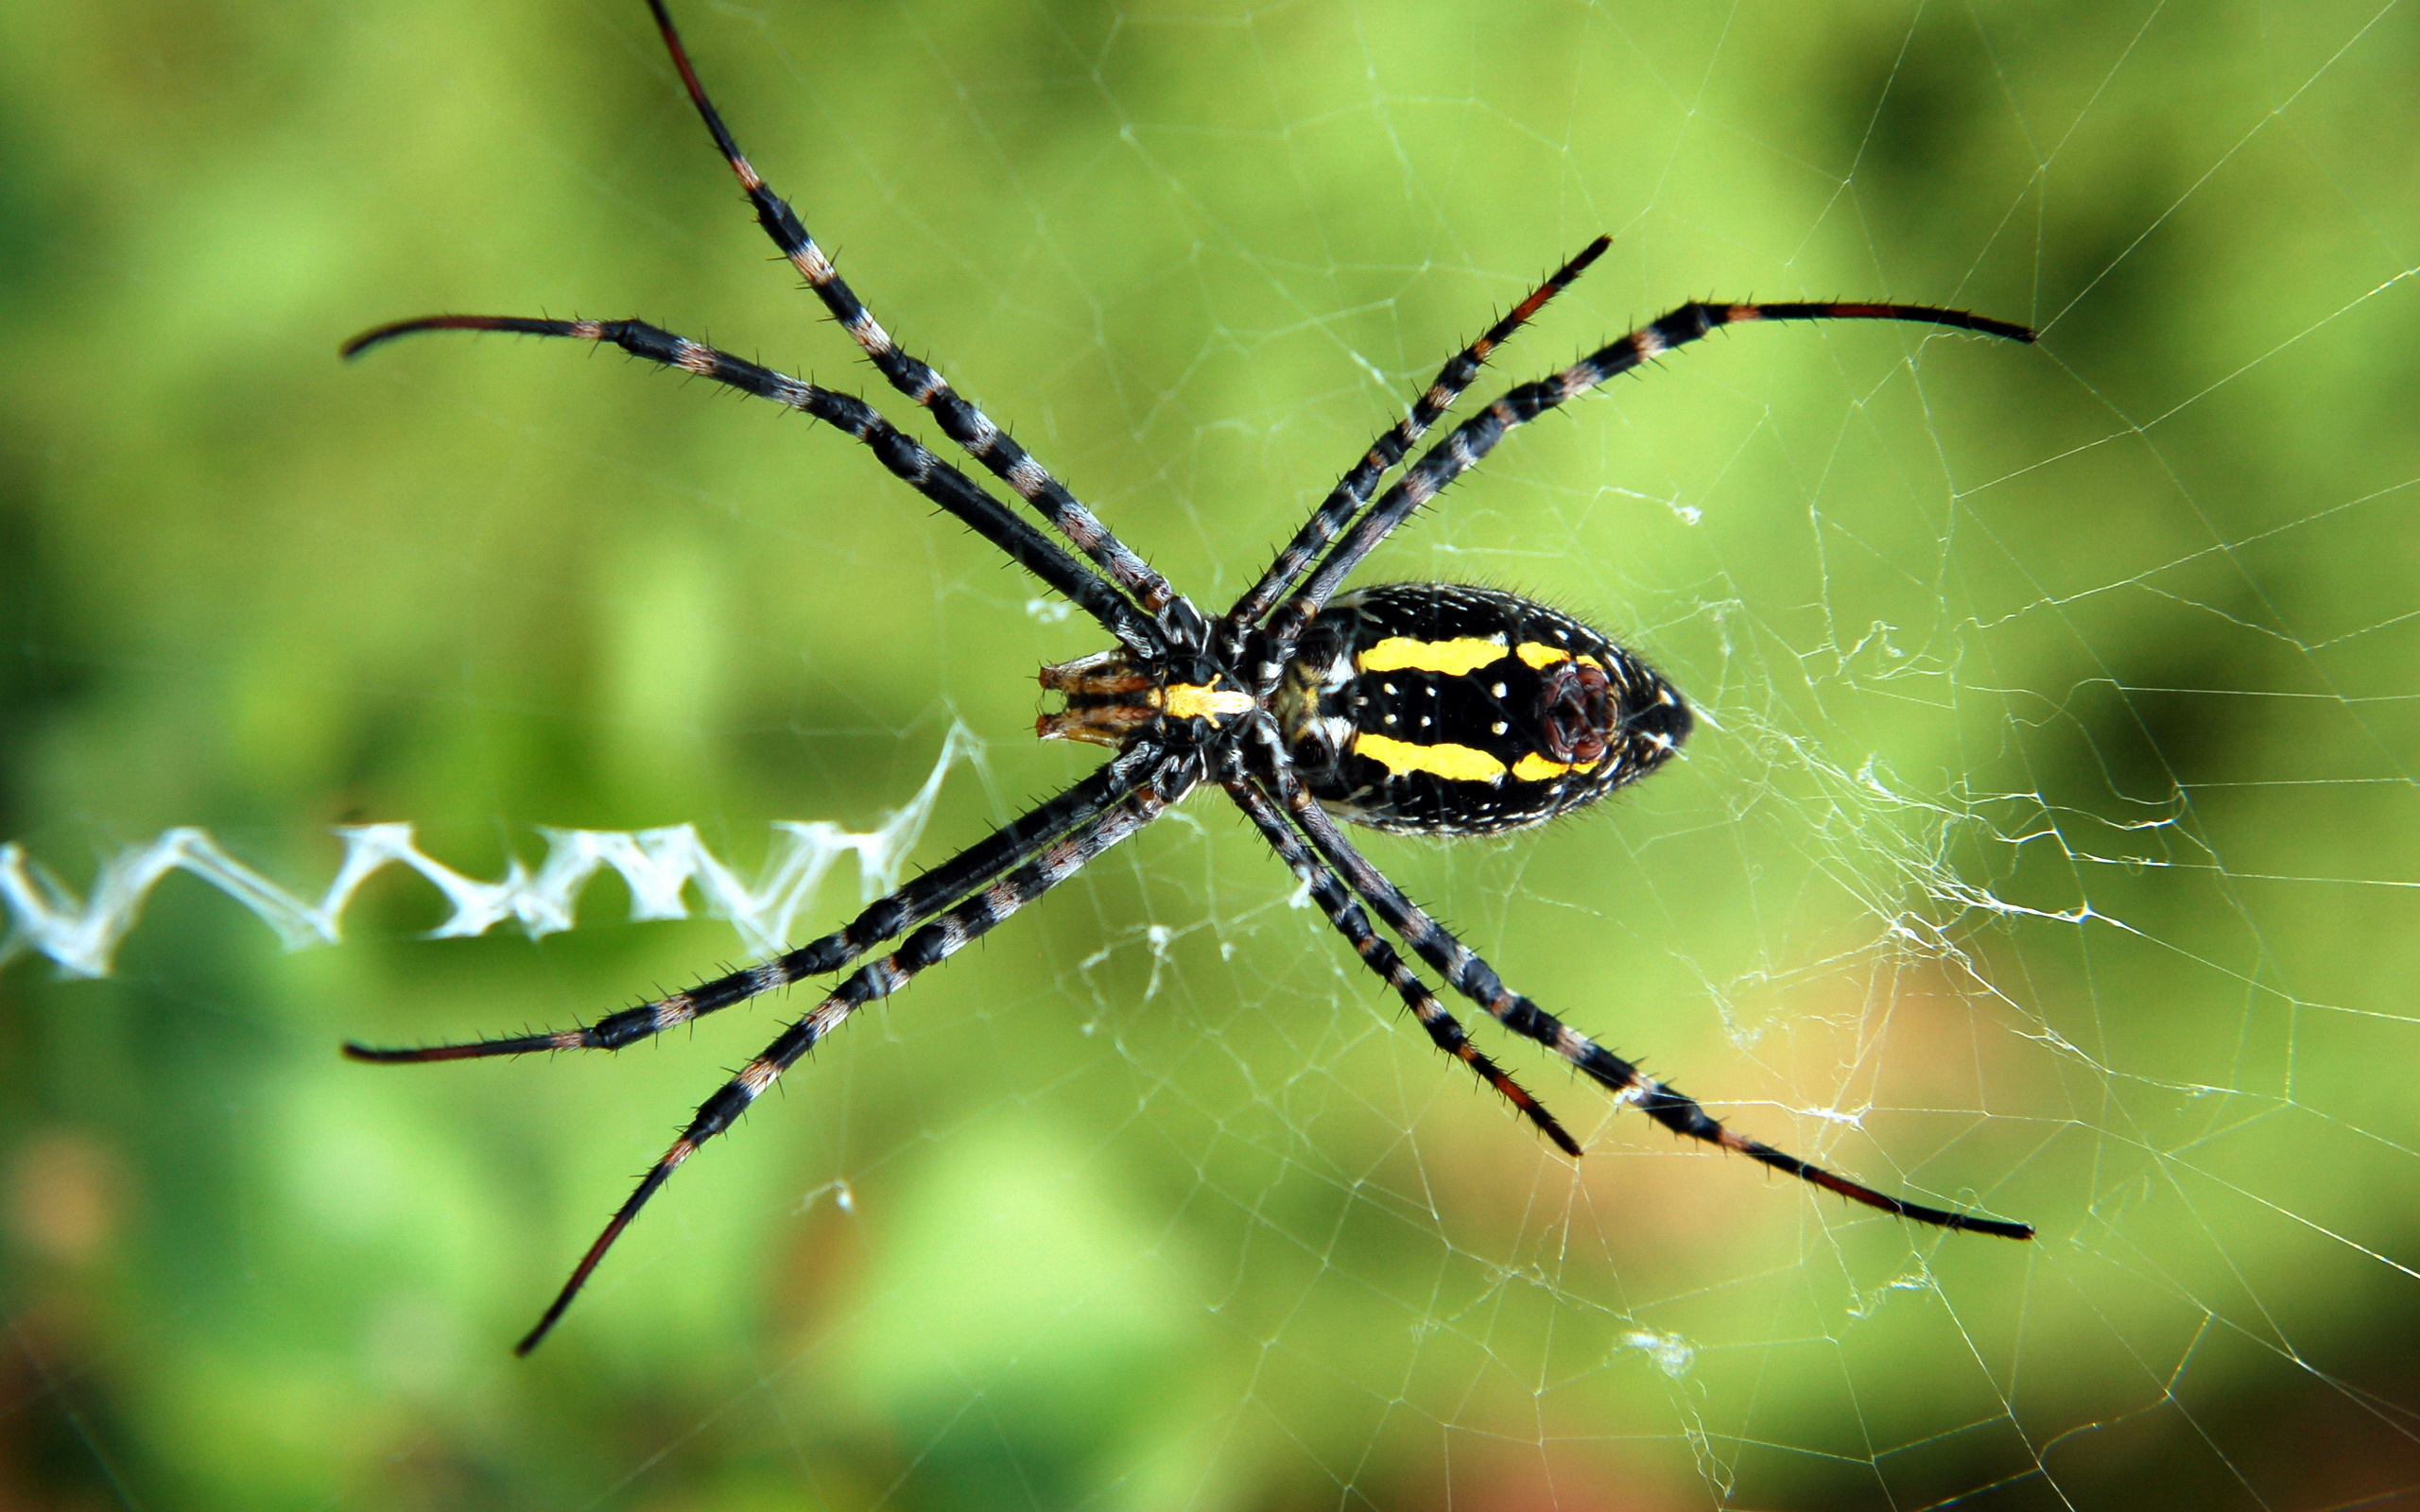 Backyard Spider desktop wallpaper